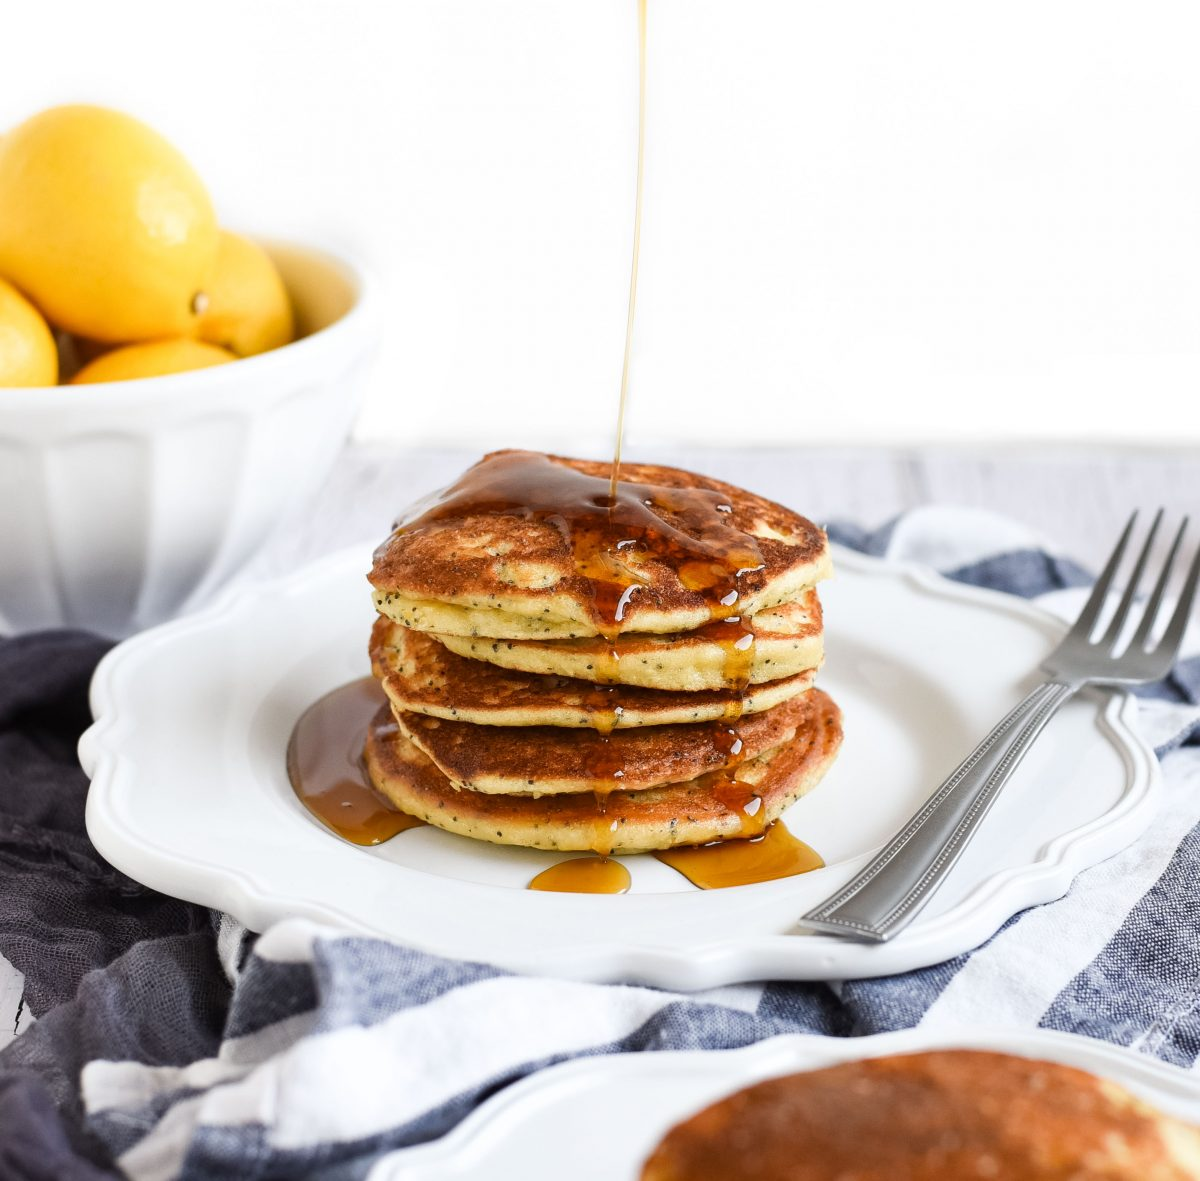 syrup drizzled over Lemon poppy seed pancakes photo